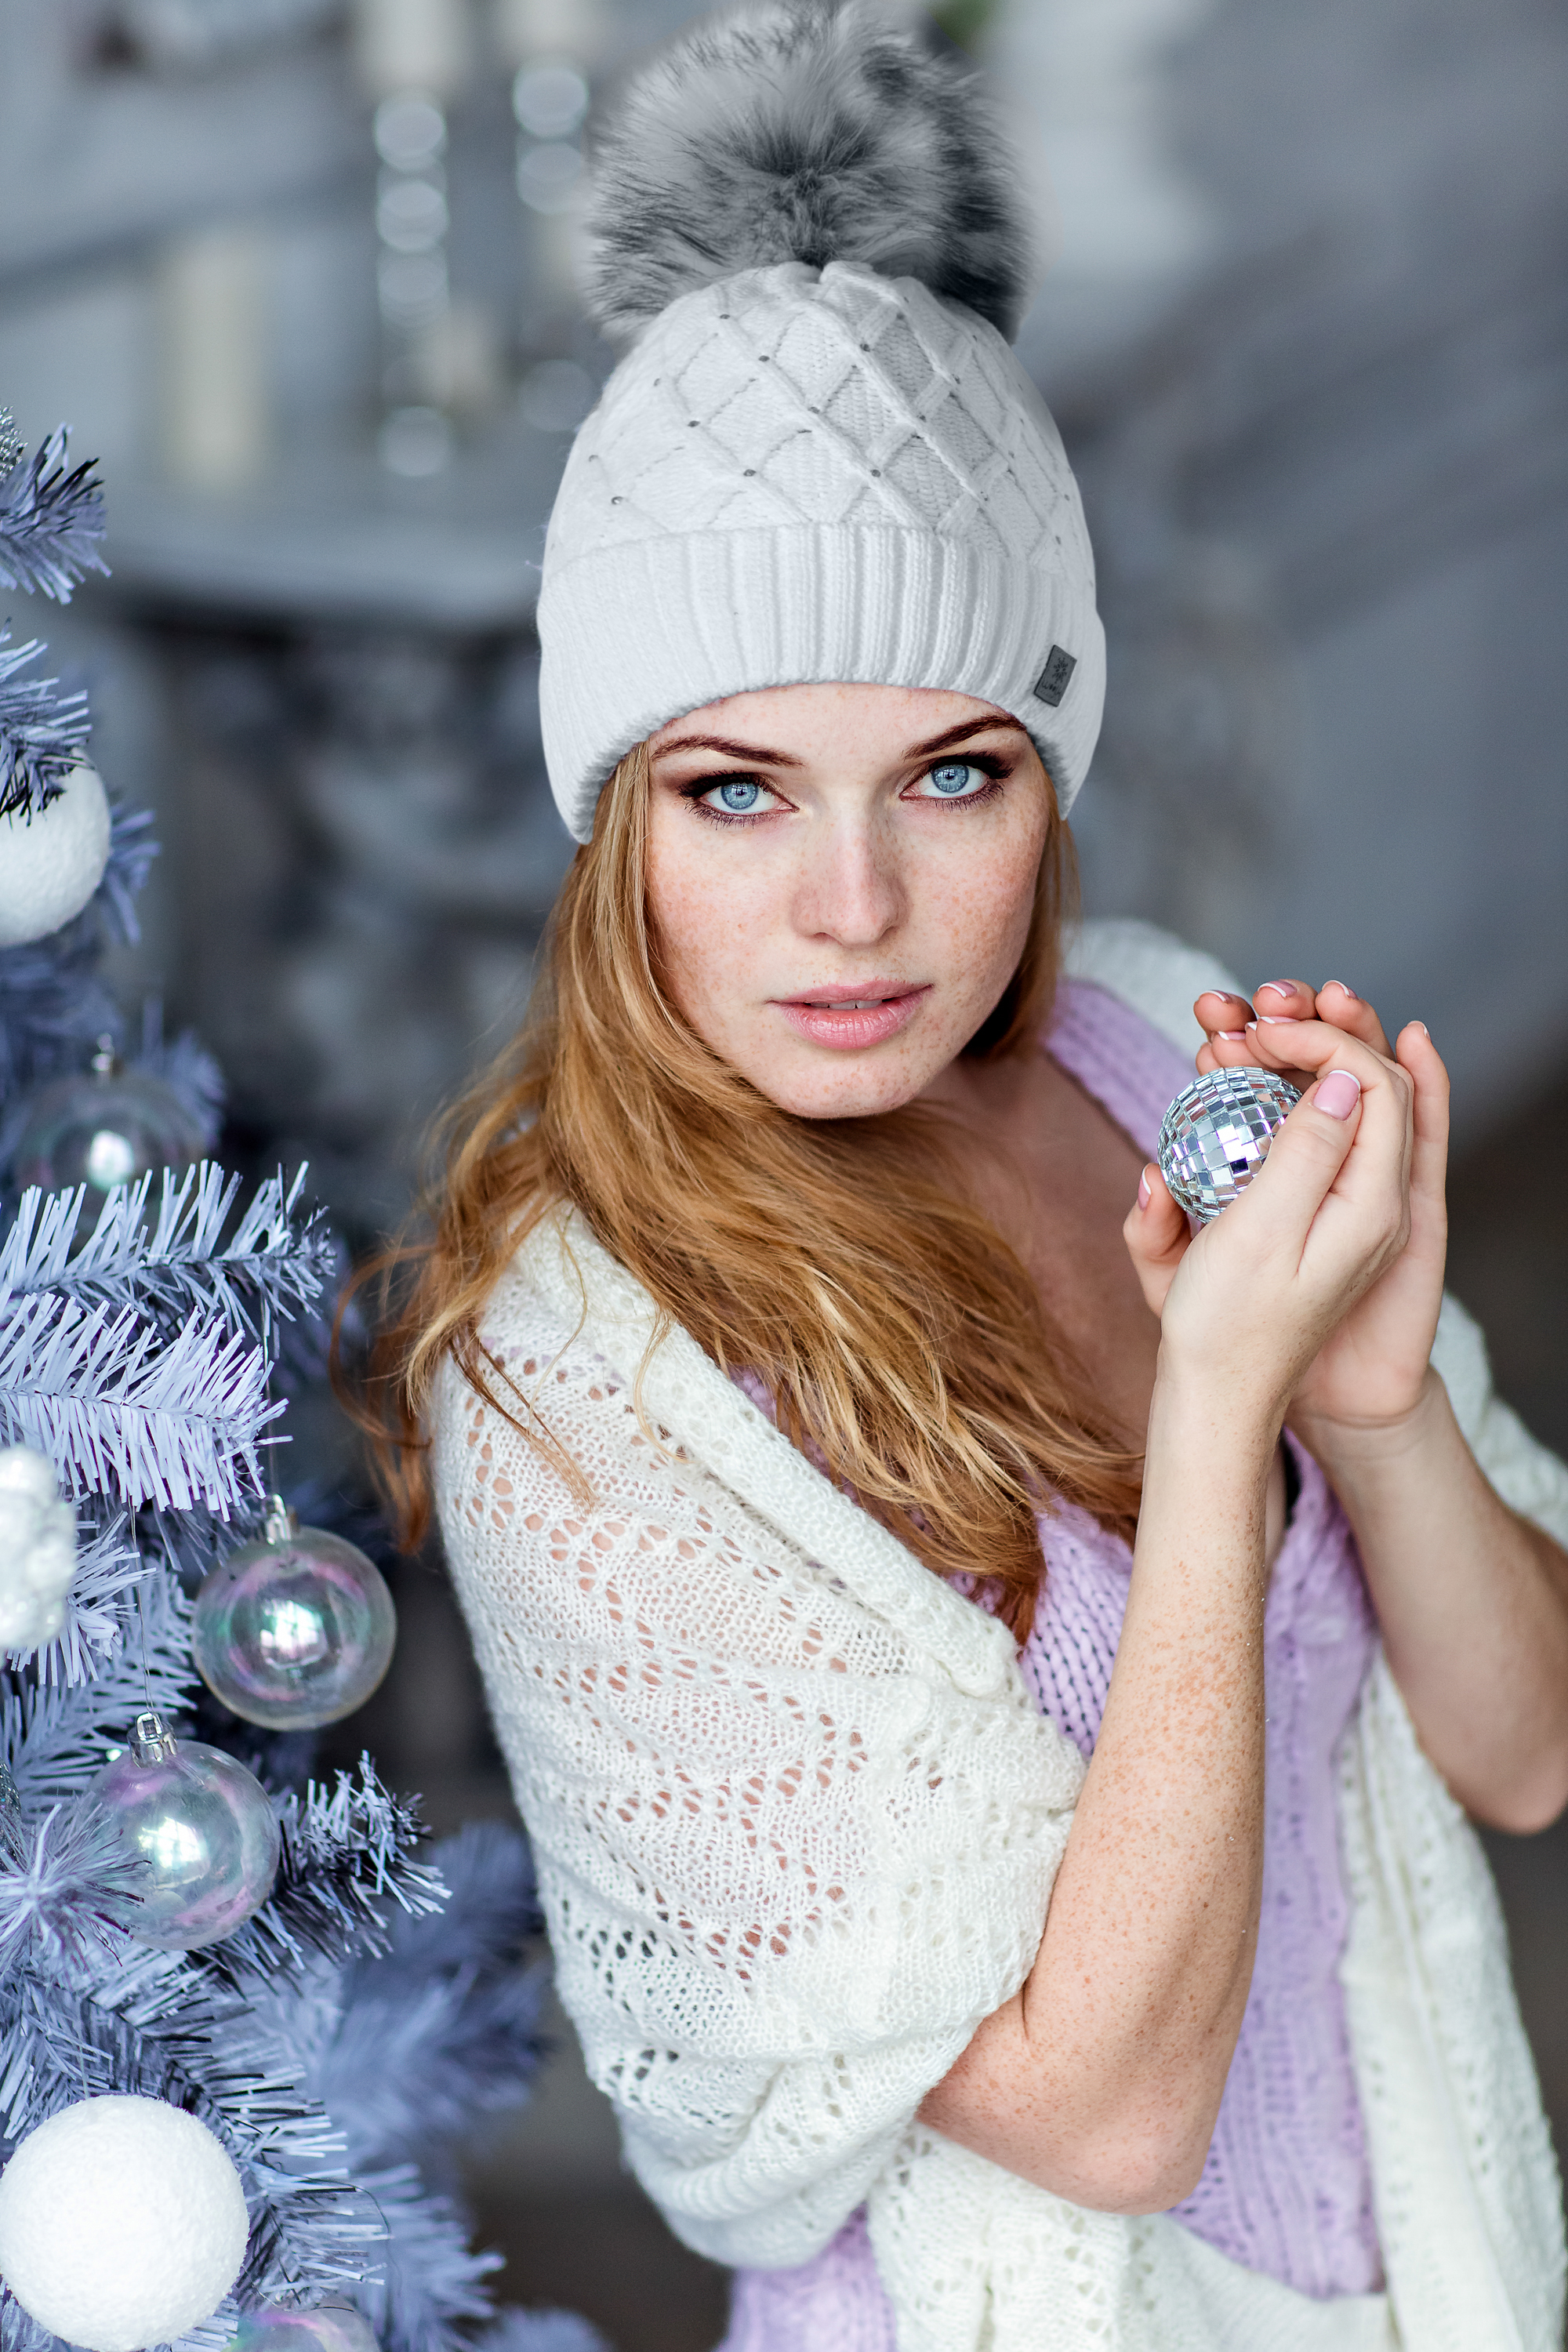 Very beautiful red-haired girl with blue eyes in a white hat costs about silver Christmas tree